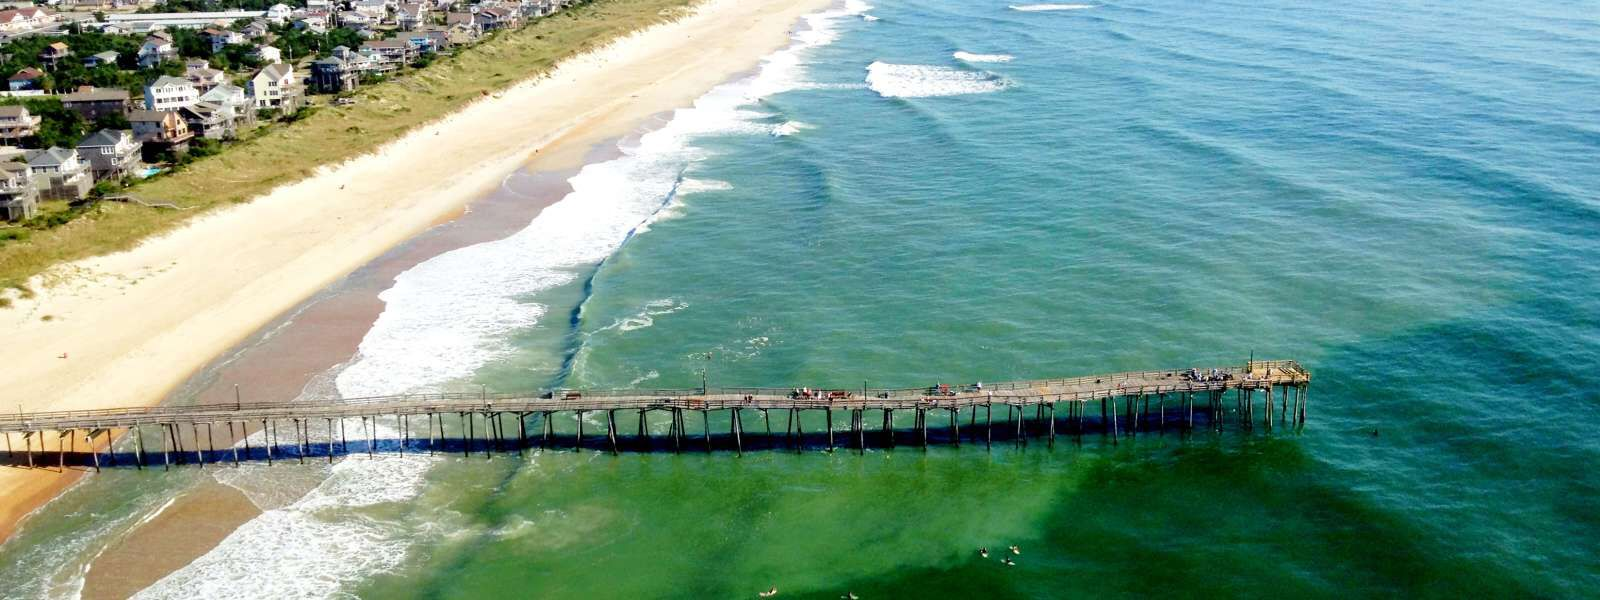 Surfs up Fall/Winter Season - Surf the Outer Banks in North Carolina! Low Cost Flights to Norfolk International Airport &Raleigh Durham International! Grab your Surfboard & Book your Flights @ www.FirstClassTravelNow.com #FirstClassTravelNow #OuterBanksNC #SurfTheOuterBanks #Fly2NorthCarolina #LowCostAirfare #CheapFlights #SurfIsUp